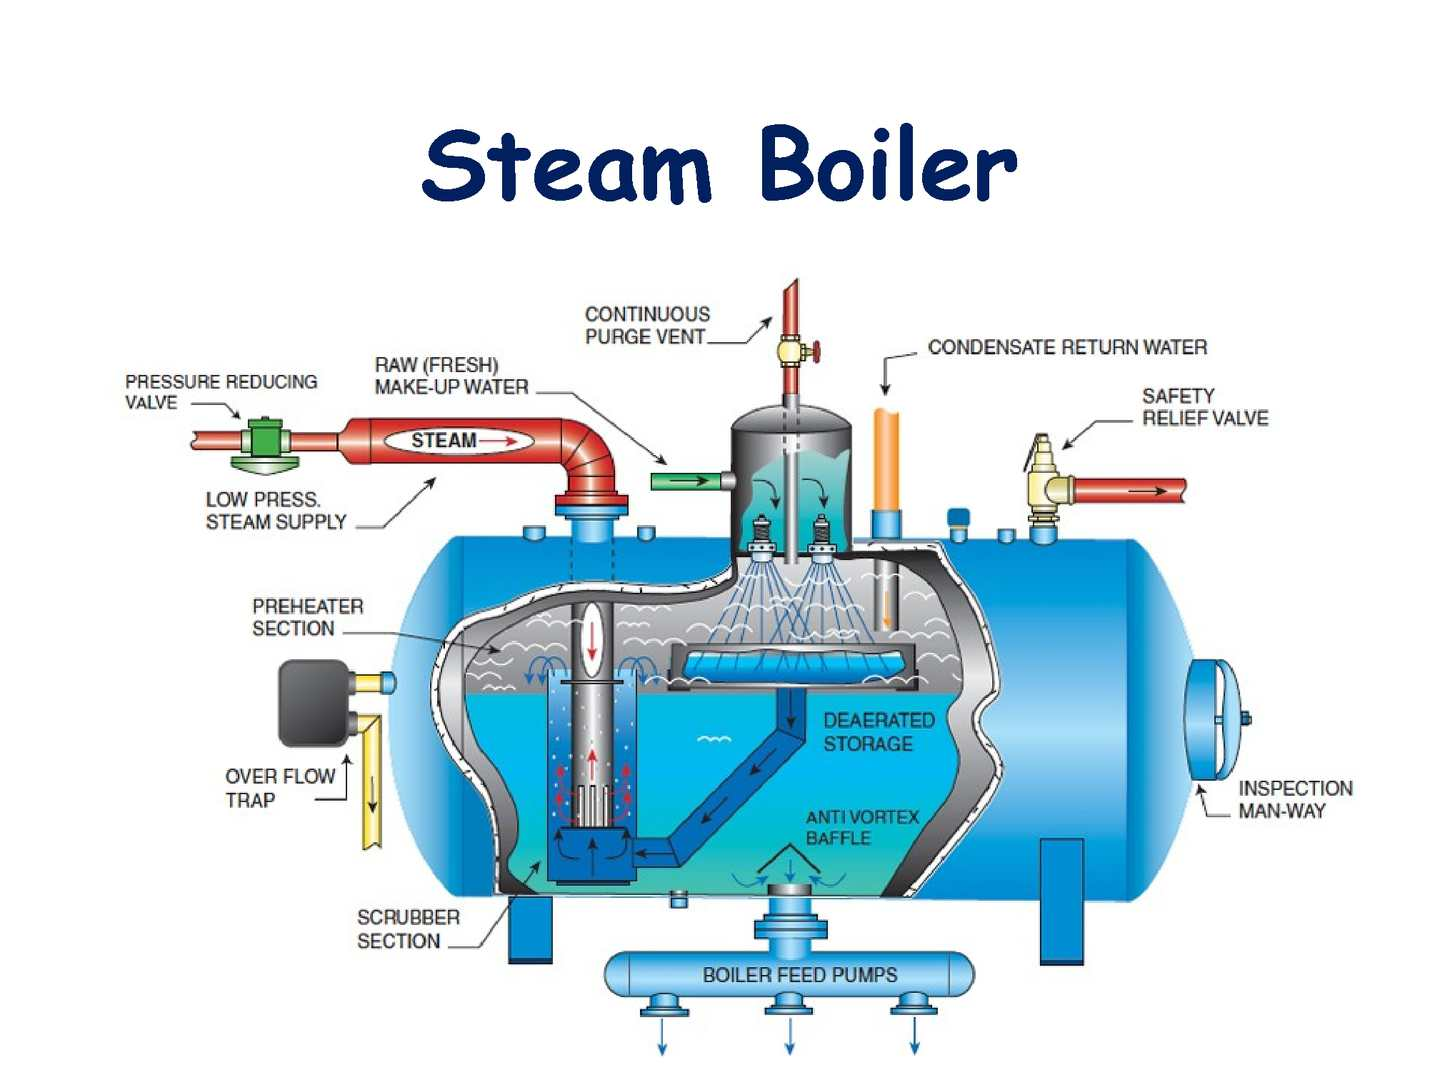 Calaméo - Steam Boiler